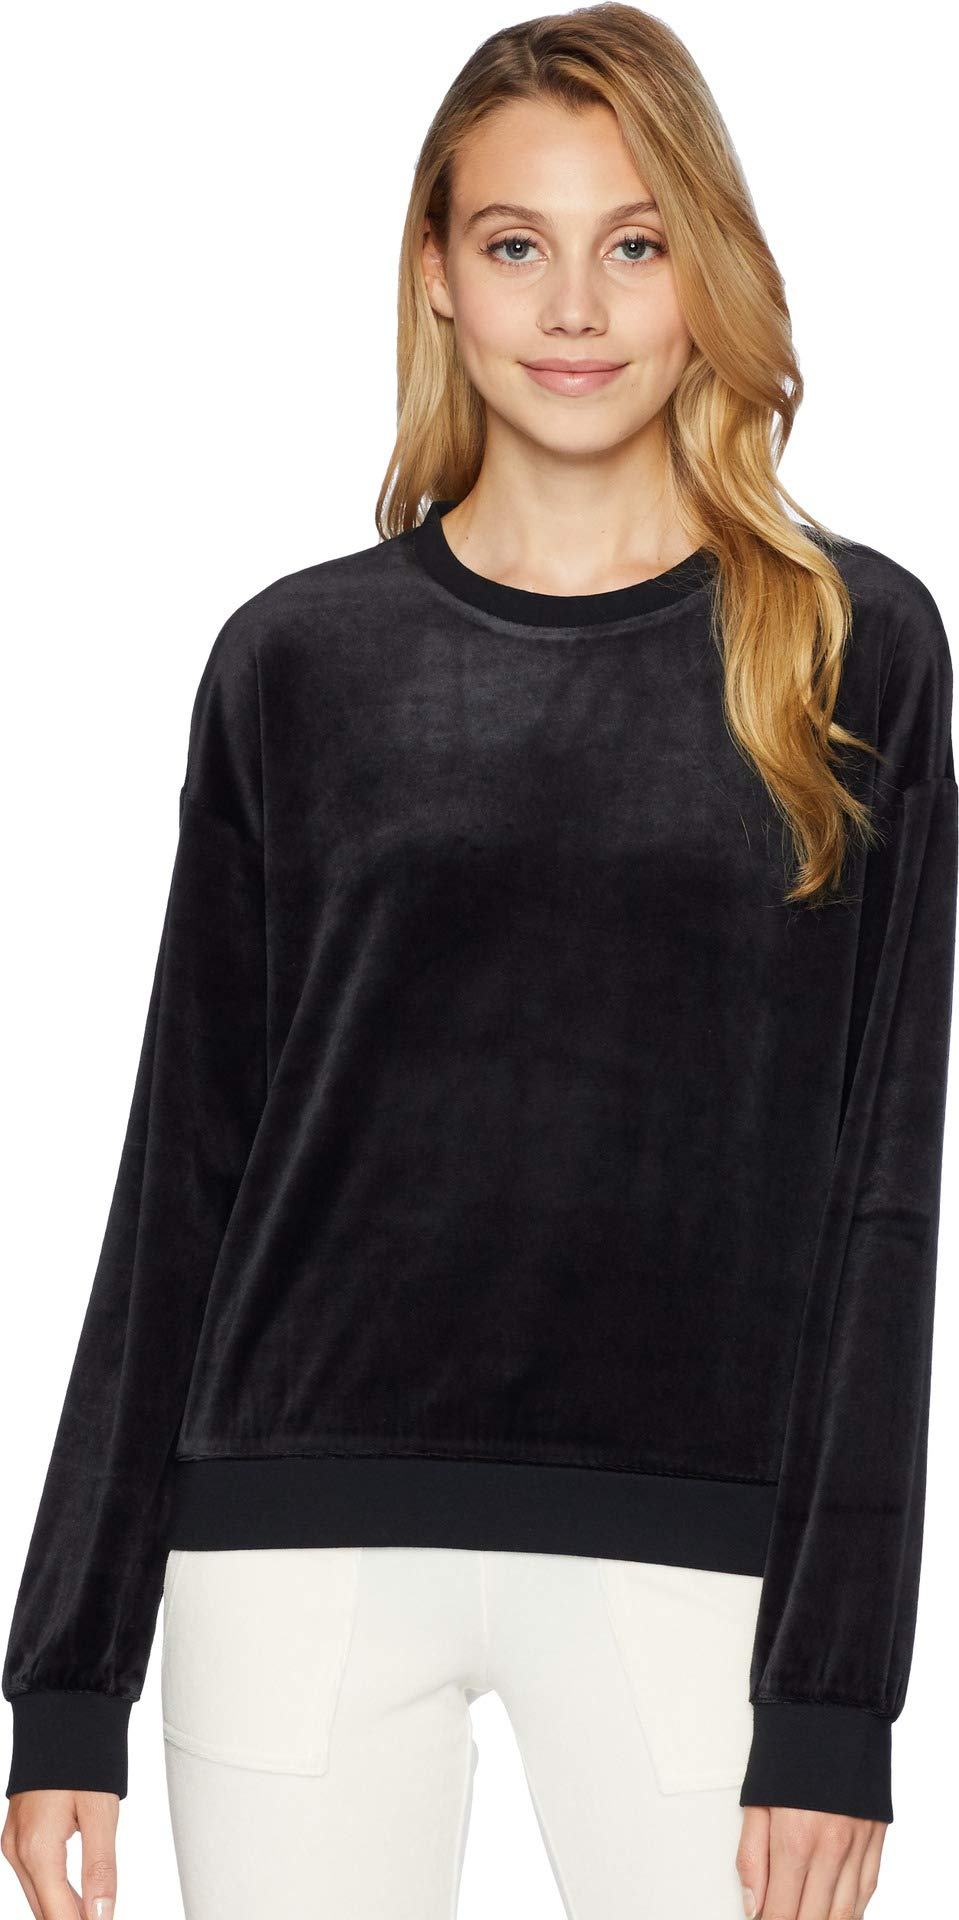 Juicy Couture Black Label Women's Lightweight Velour Paradise Cove Pullover, Pitch, L